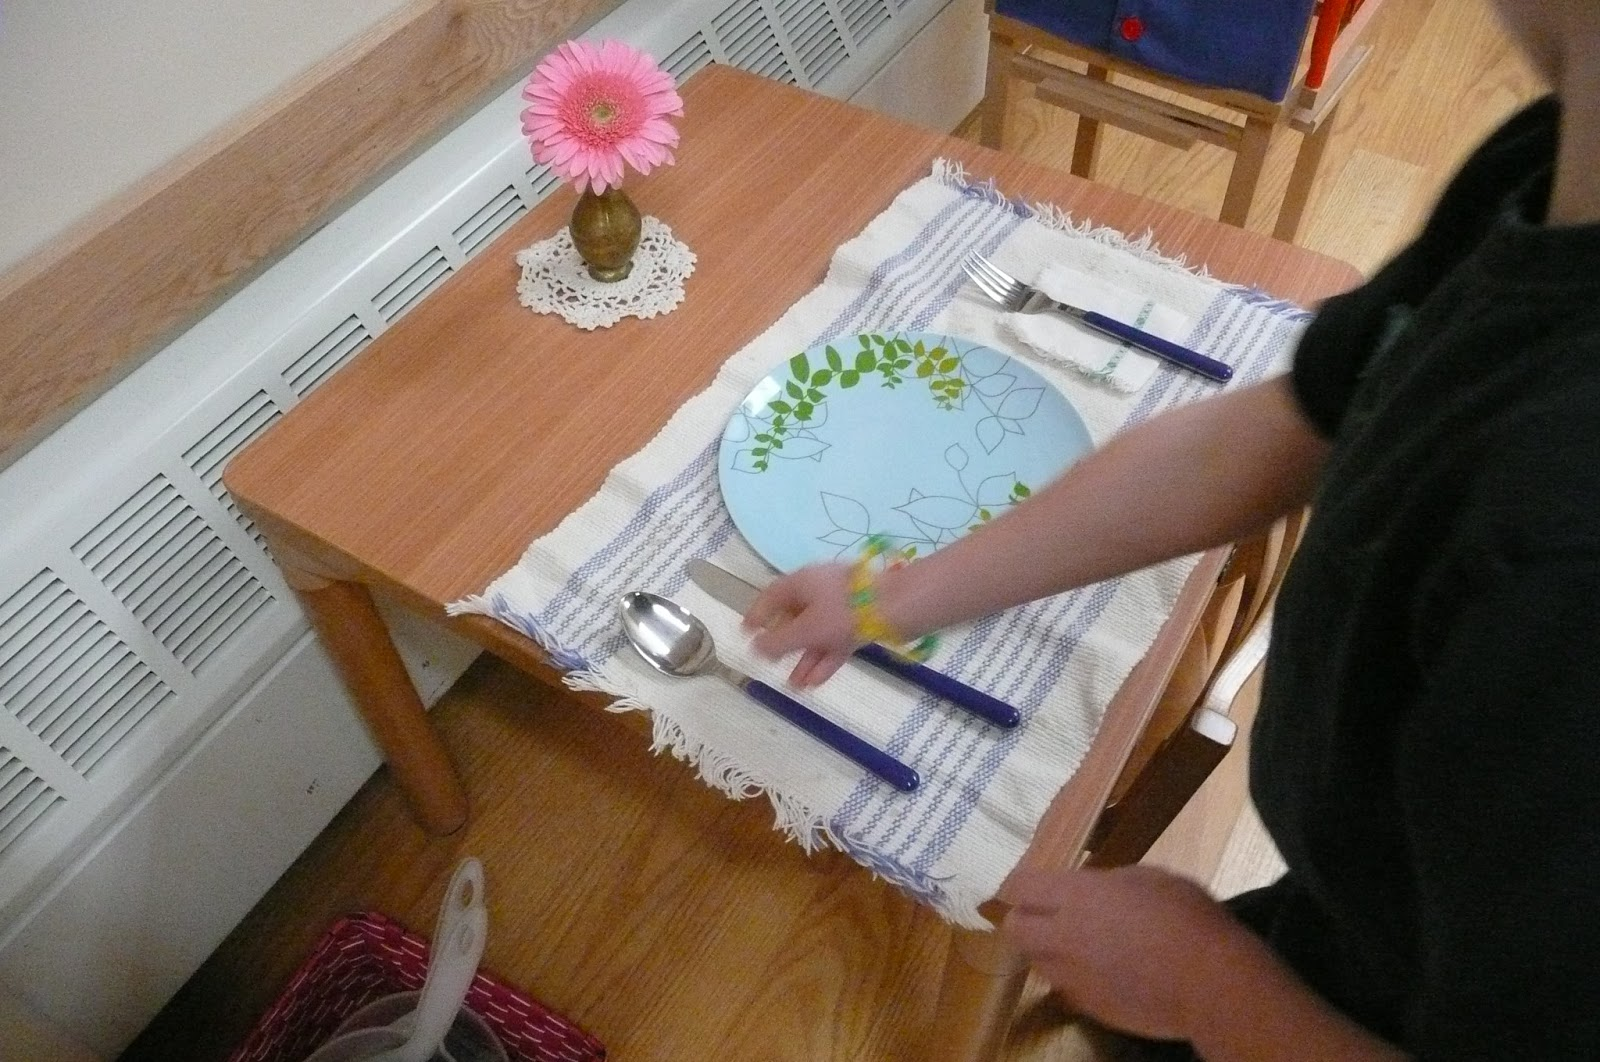 Setting a table is a \u0027work\u0027 we have in our practical life shelves. The children love to take this to a table and practice table setting! This activity ... & Setting a table - Ann Arbor Children\u0027s House - Montessori School